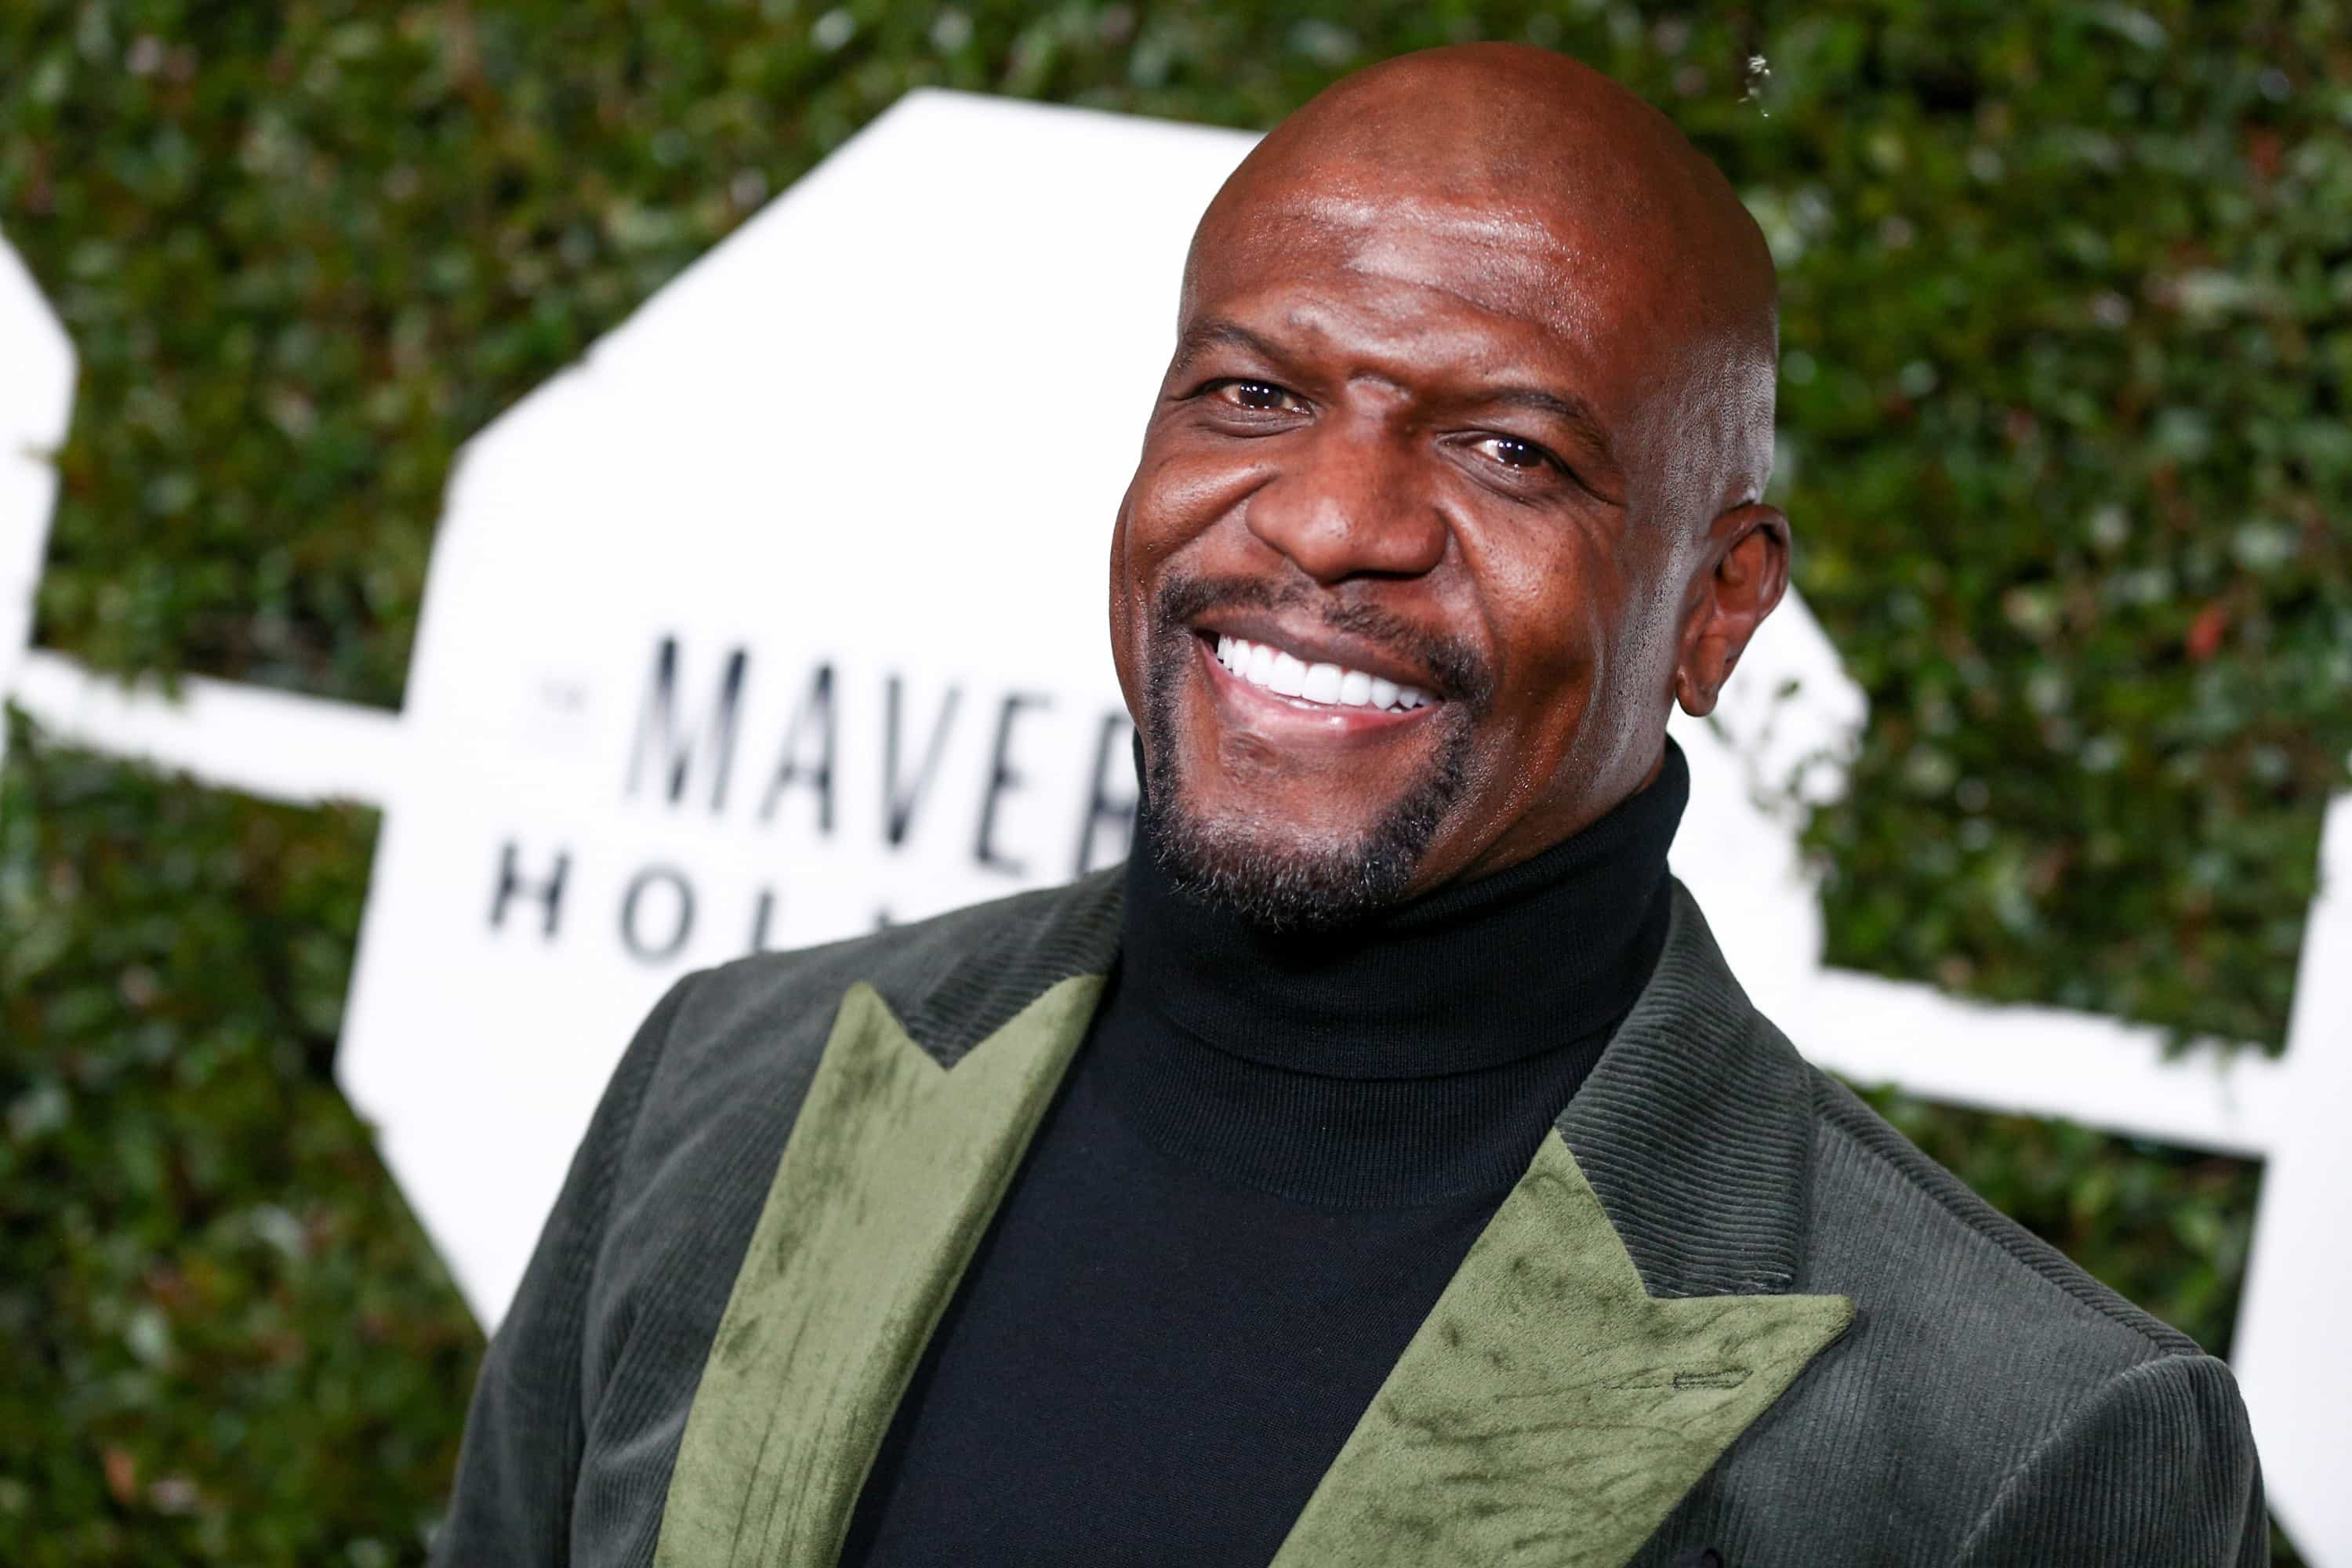 Terry Crews junta-se a Jeff Bezos e acusa tablóide de chantagem